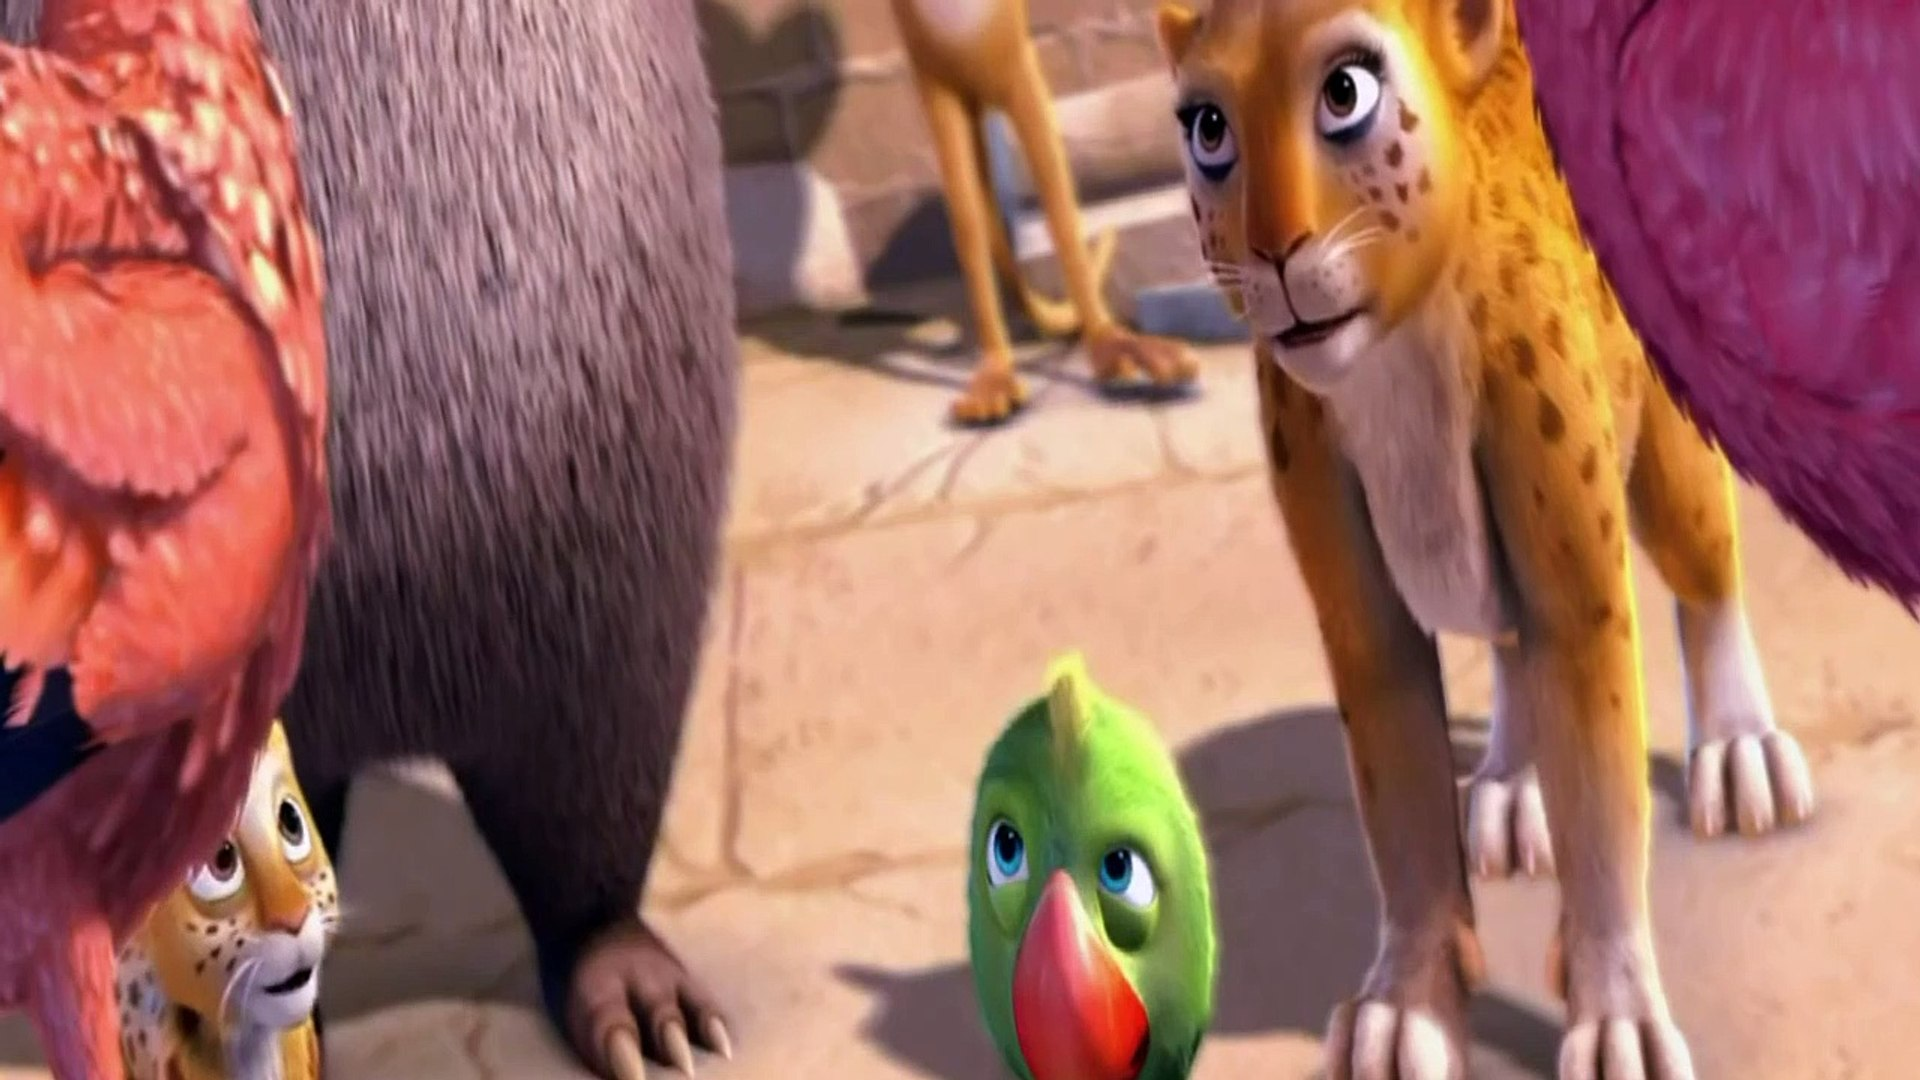 New Animation Movies 2020 Full Movies English - Kids movies - Comedy Movies EPISODE (II).